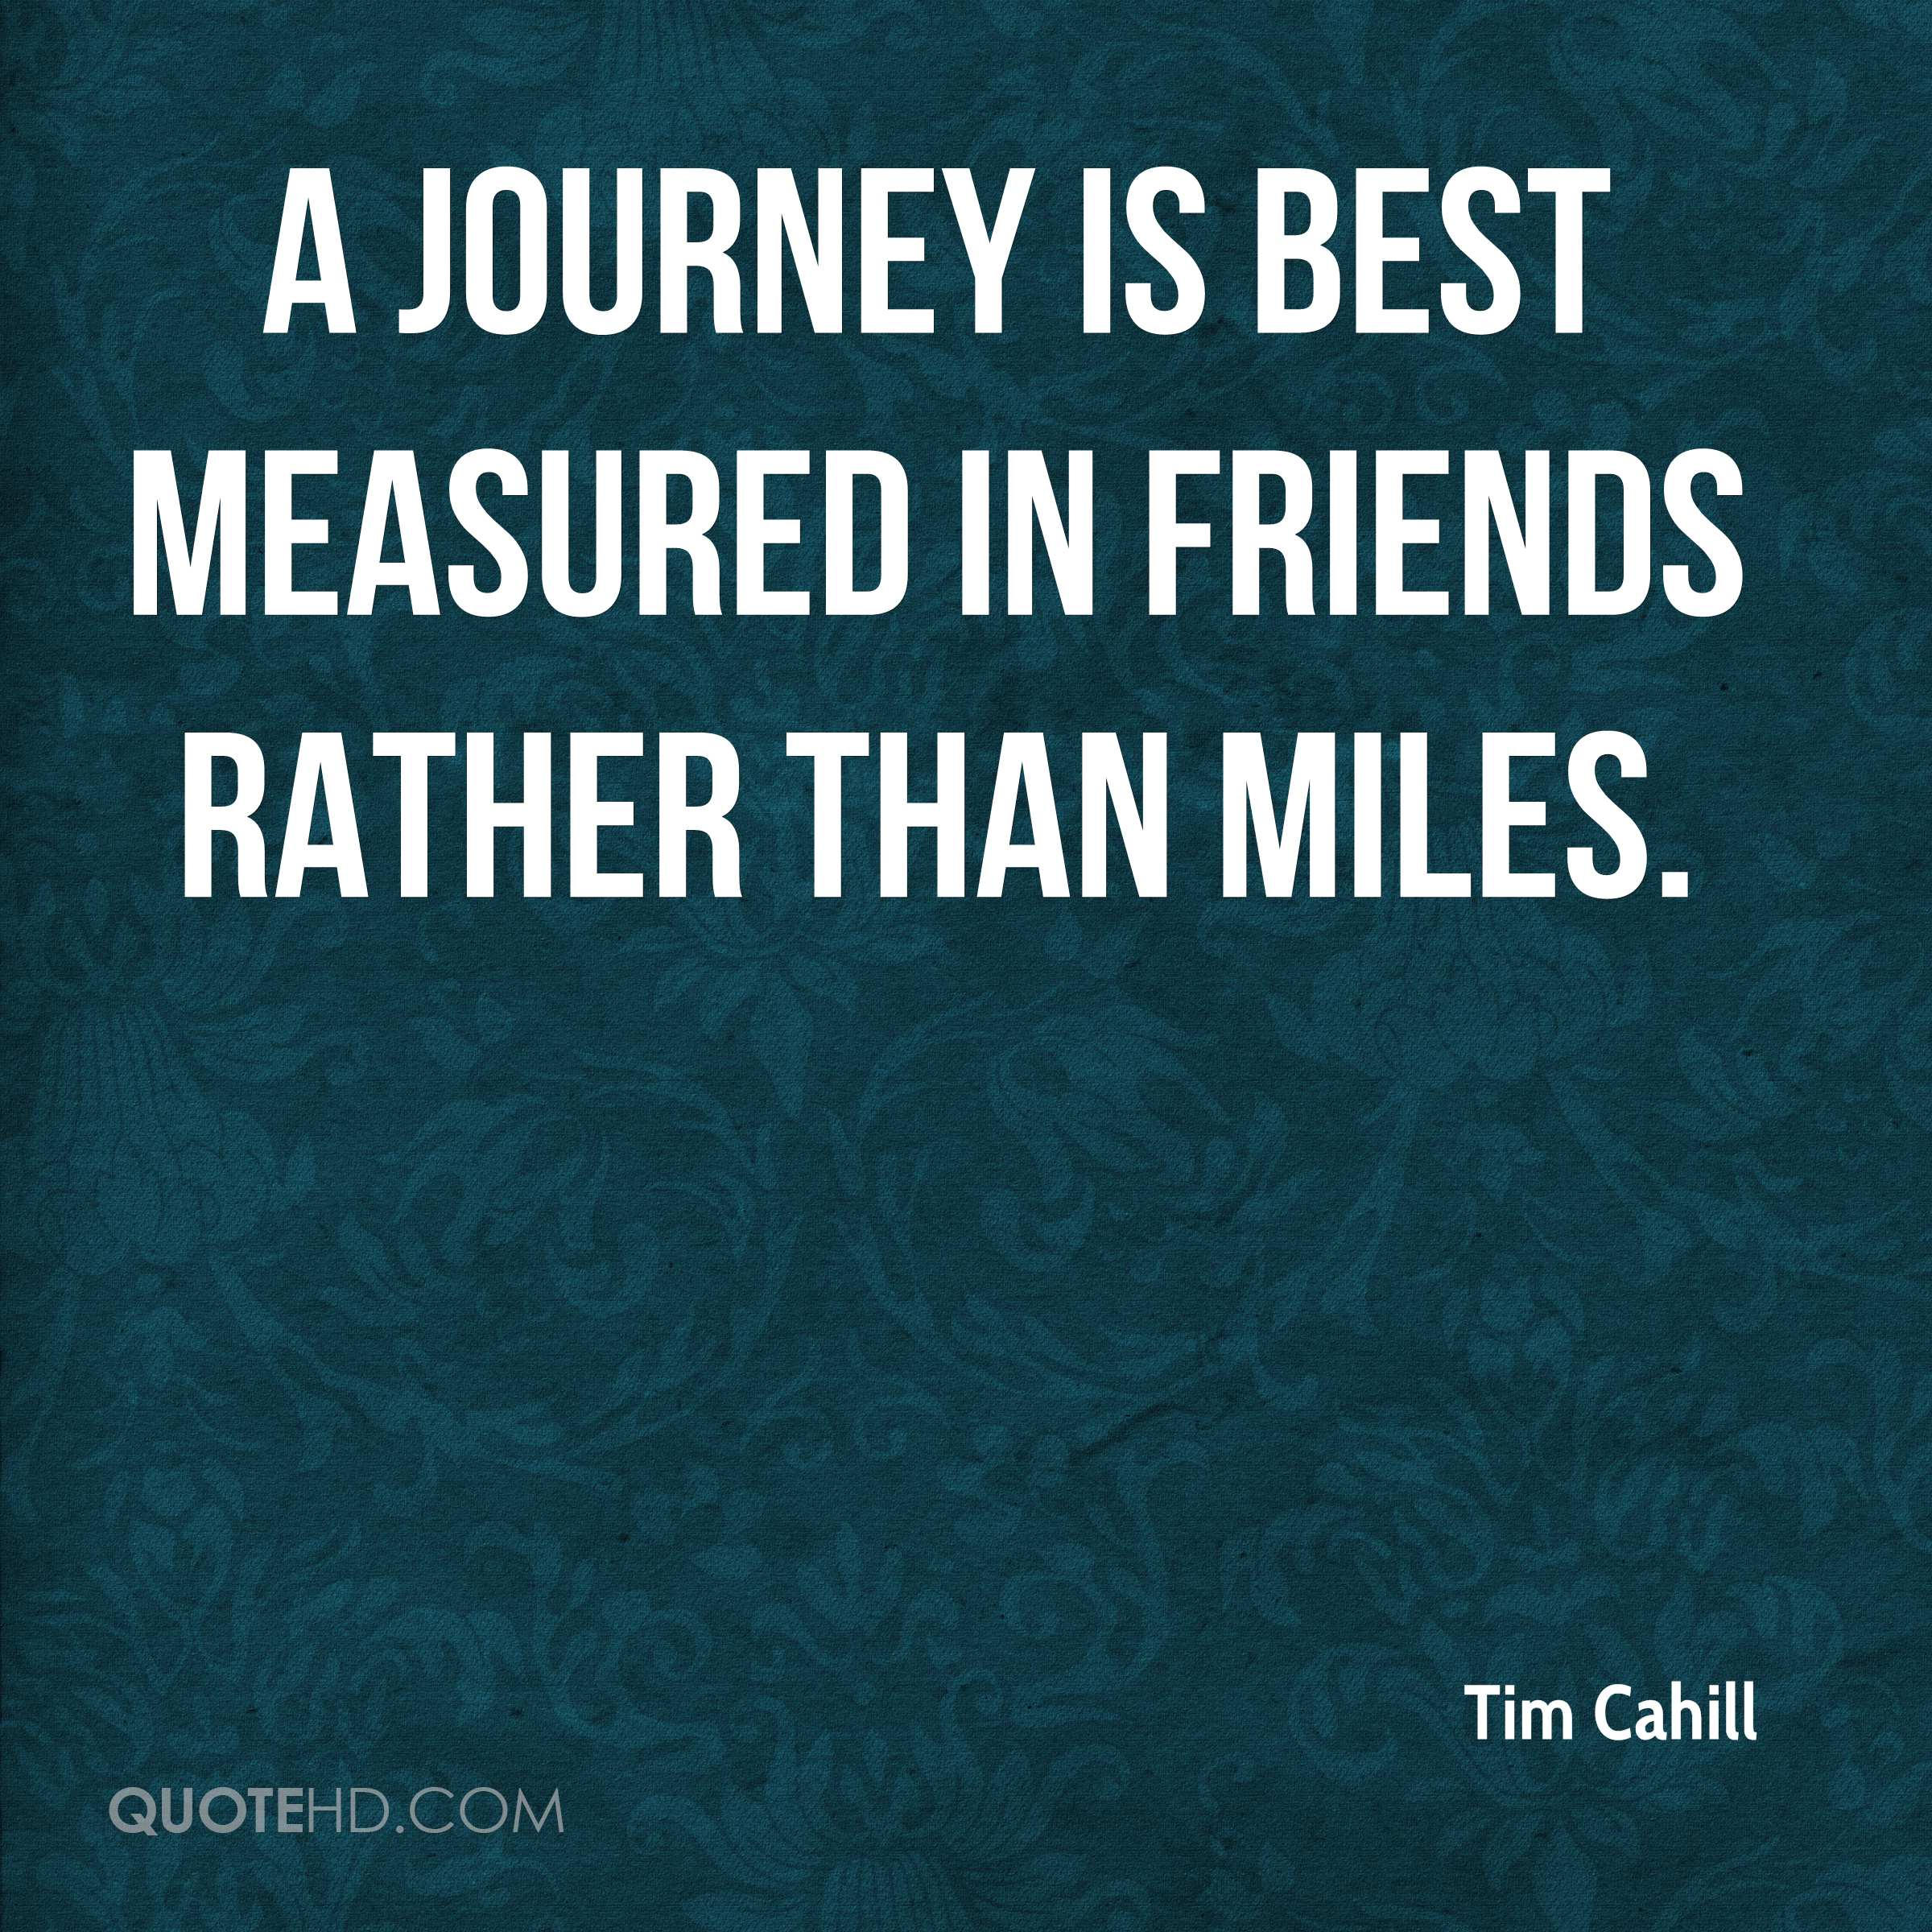 Quotes About Journey Of Friendship Quotes About Friendship And Journeys All Journeys Have Secret